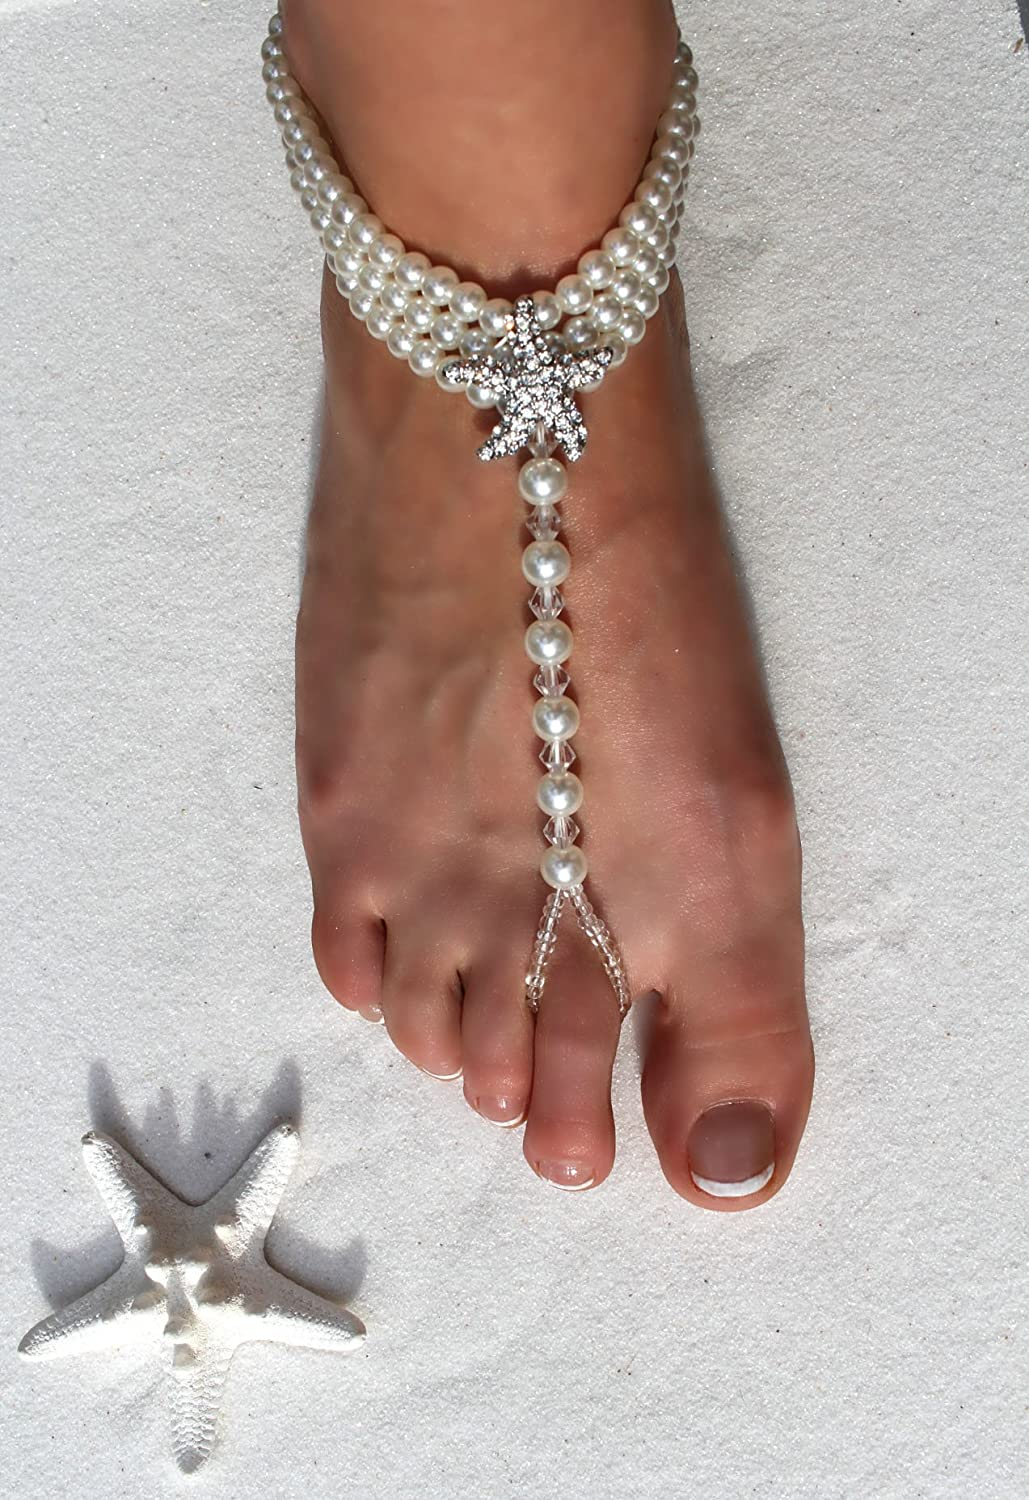 cce3da8e9044cb Amazon.com  Ivory Barefoot Sandals - Beach Wedding Beaded Pearl Anklet with  Rhinestone Starfish - Set of 2  Shoes